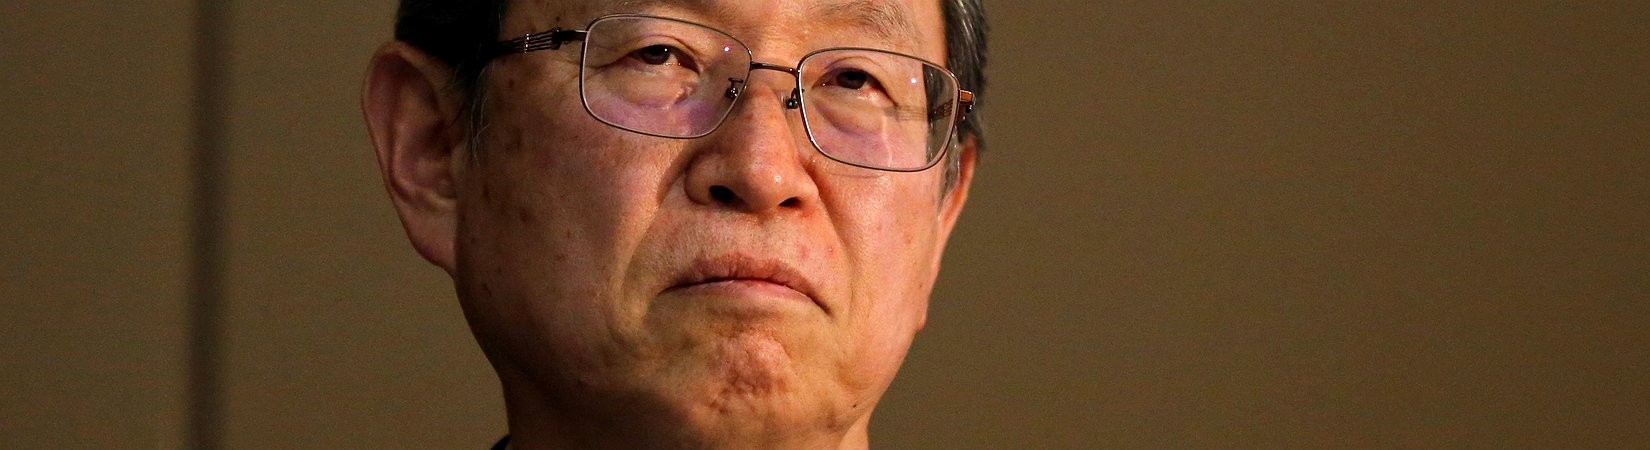 Toshiba won't reveal results at shareholders meeting just two days before legal deadline